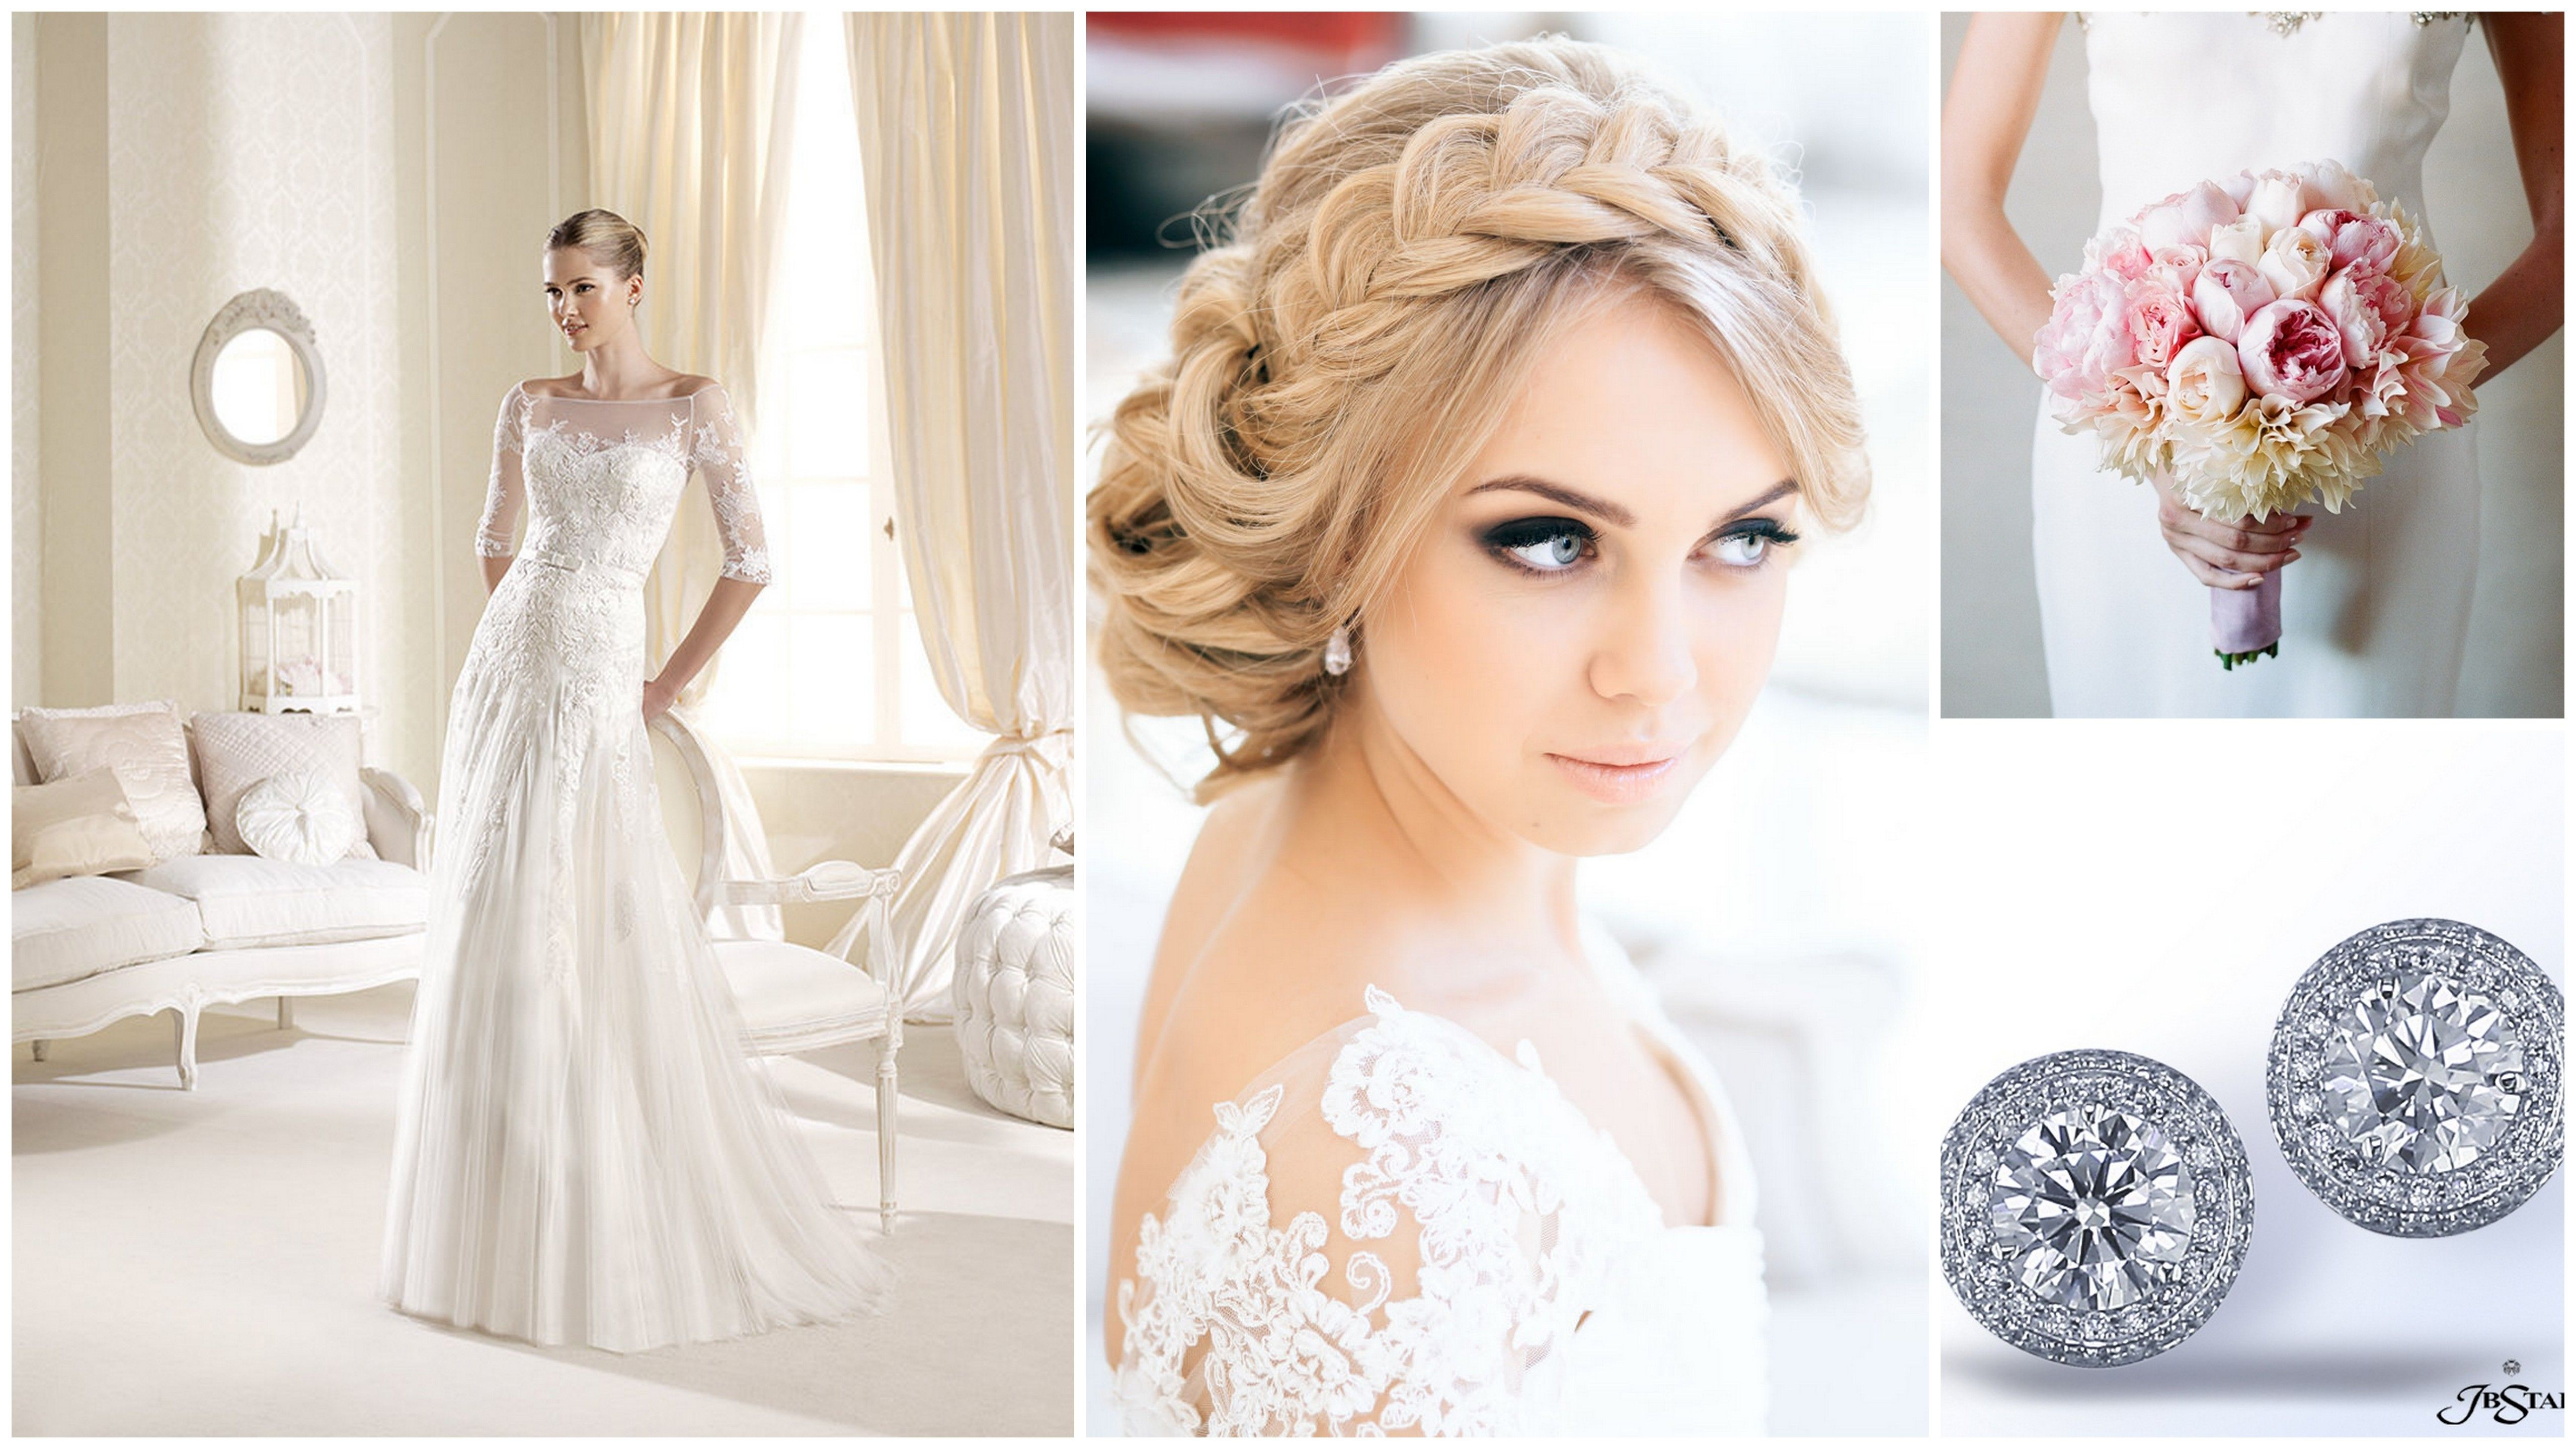 bridal look with braided updo | bridal look inspiration/stylizacje ...